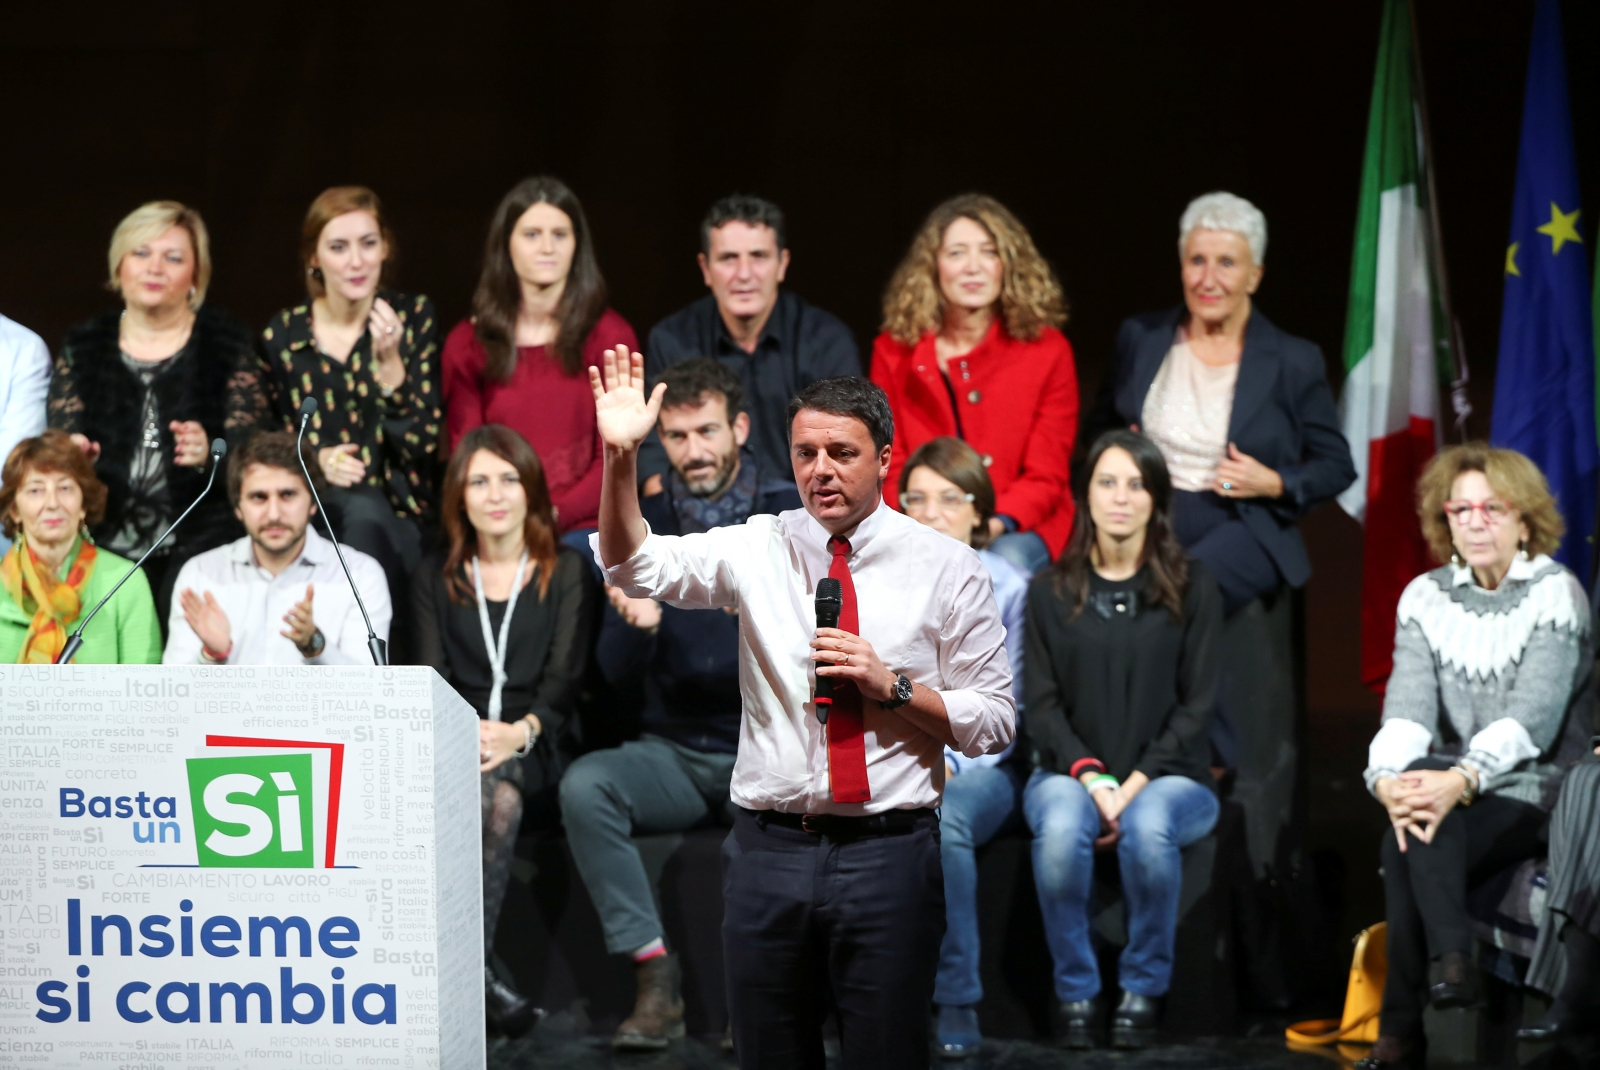 Matteo Renzi campaigns for Yes vote